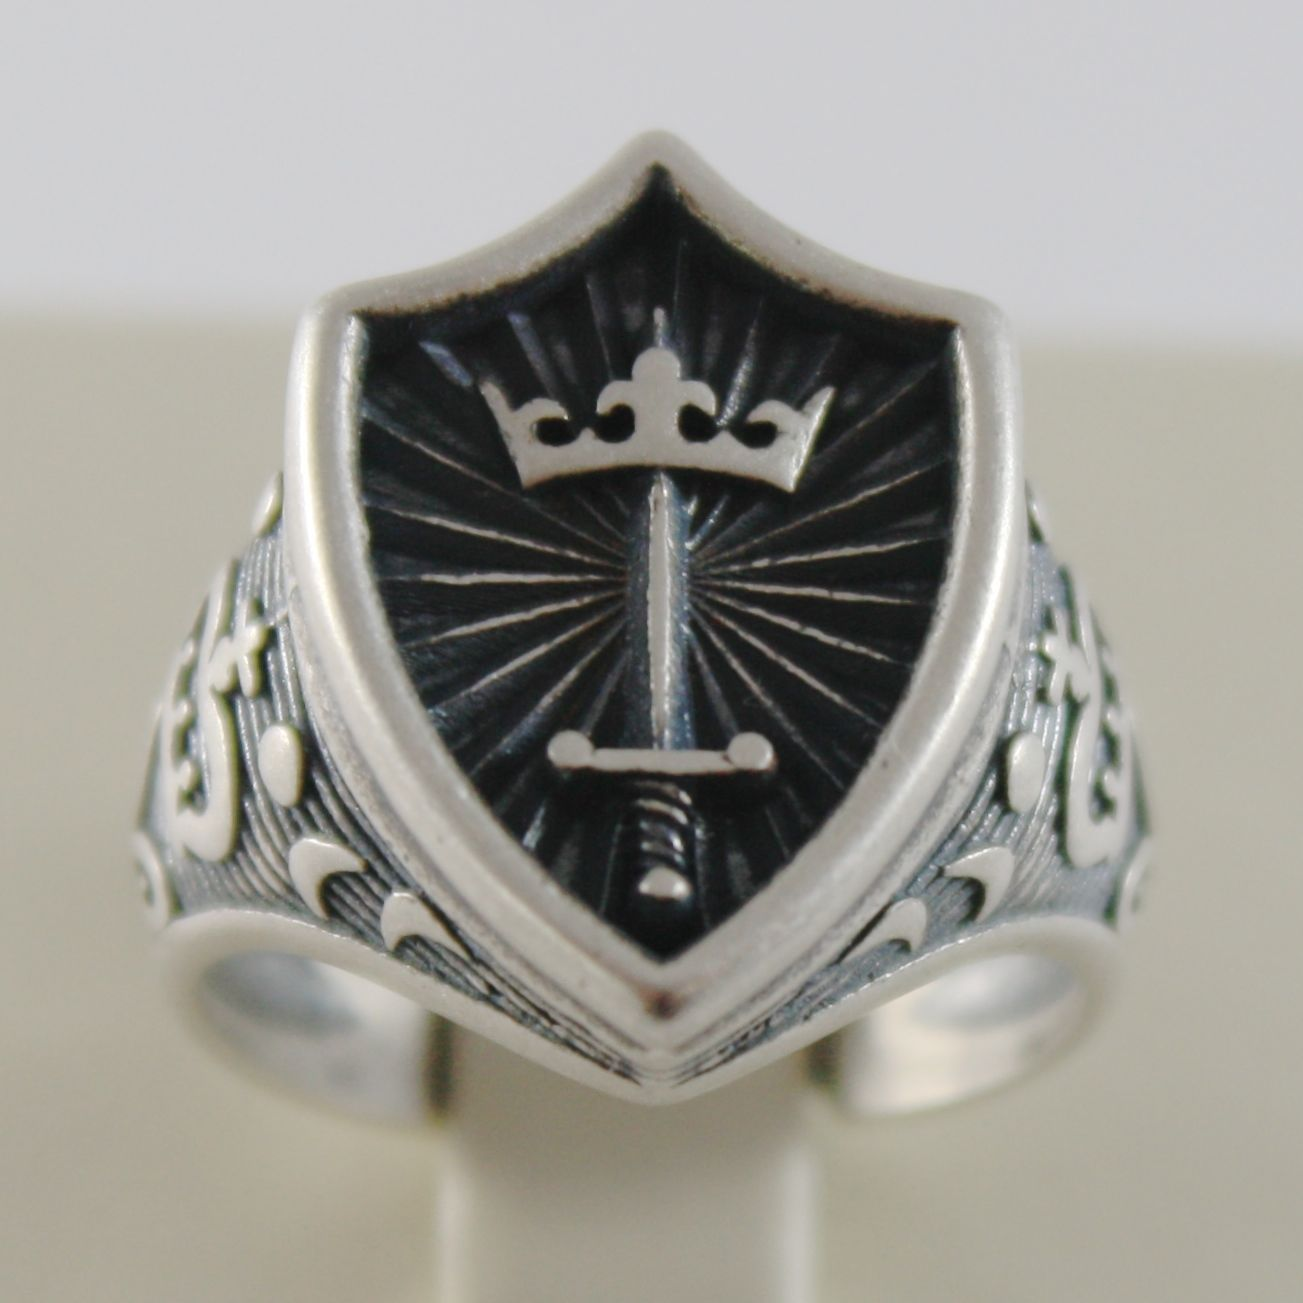 SOLID 925 BURNISHED SILVER BAND MEDIEVAL CROWN RING, SWORD ARMS, MADE IN ITALY